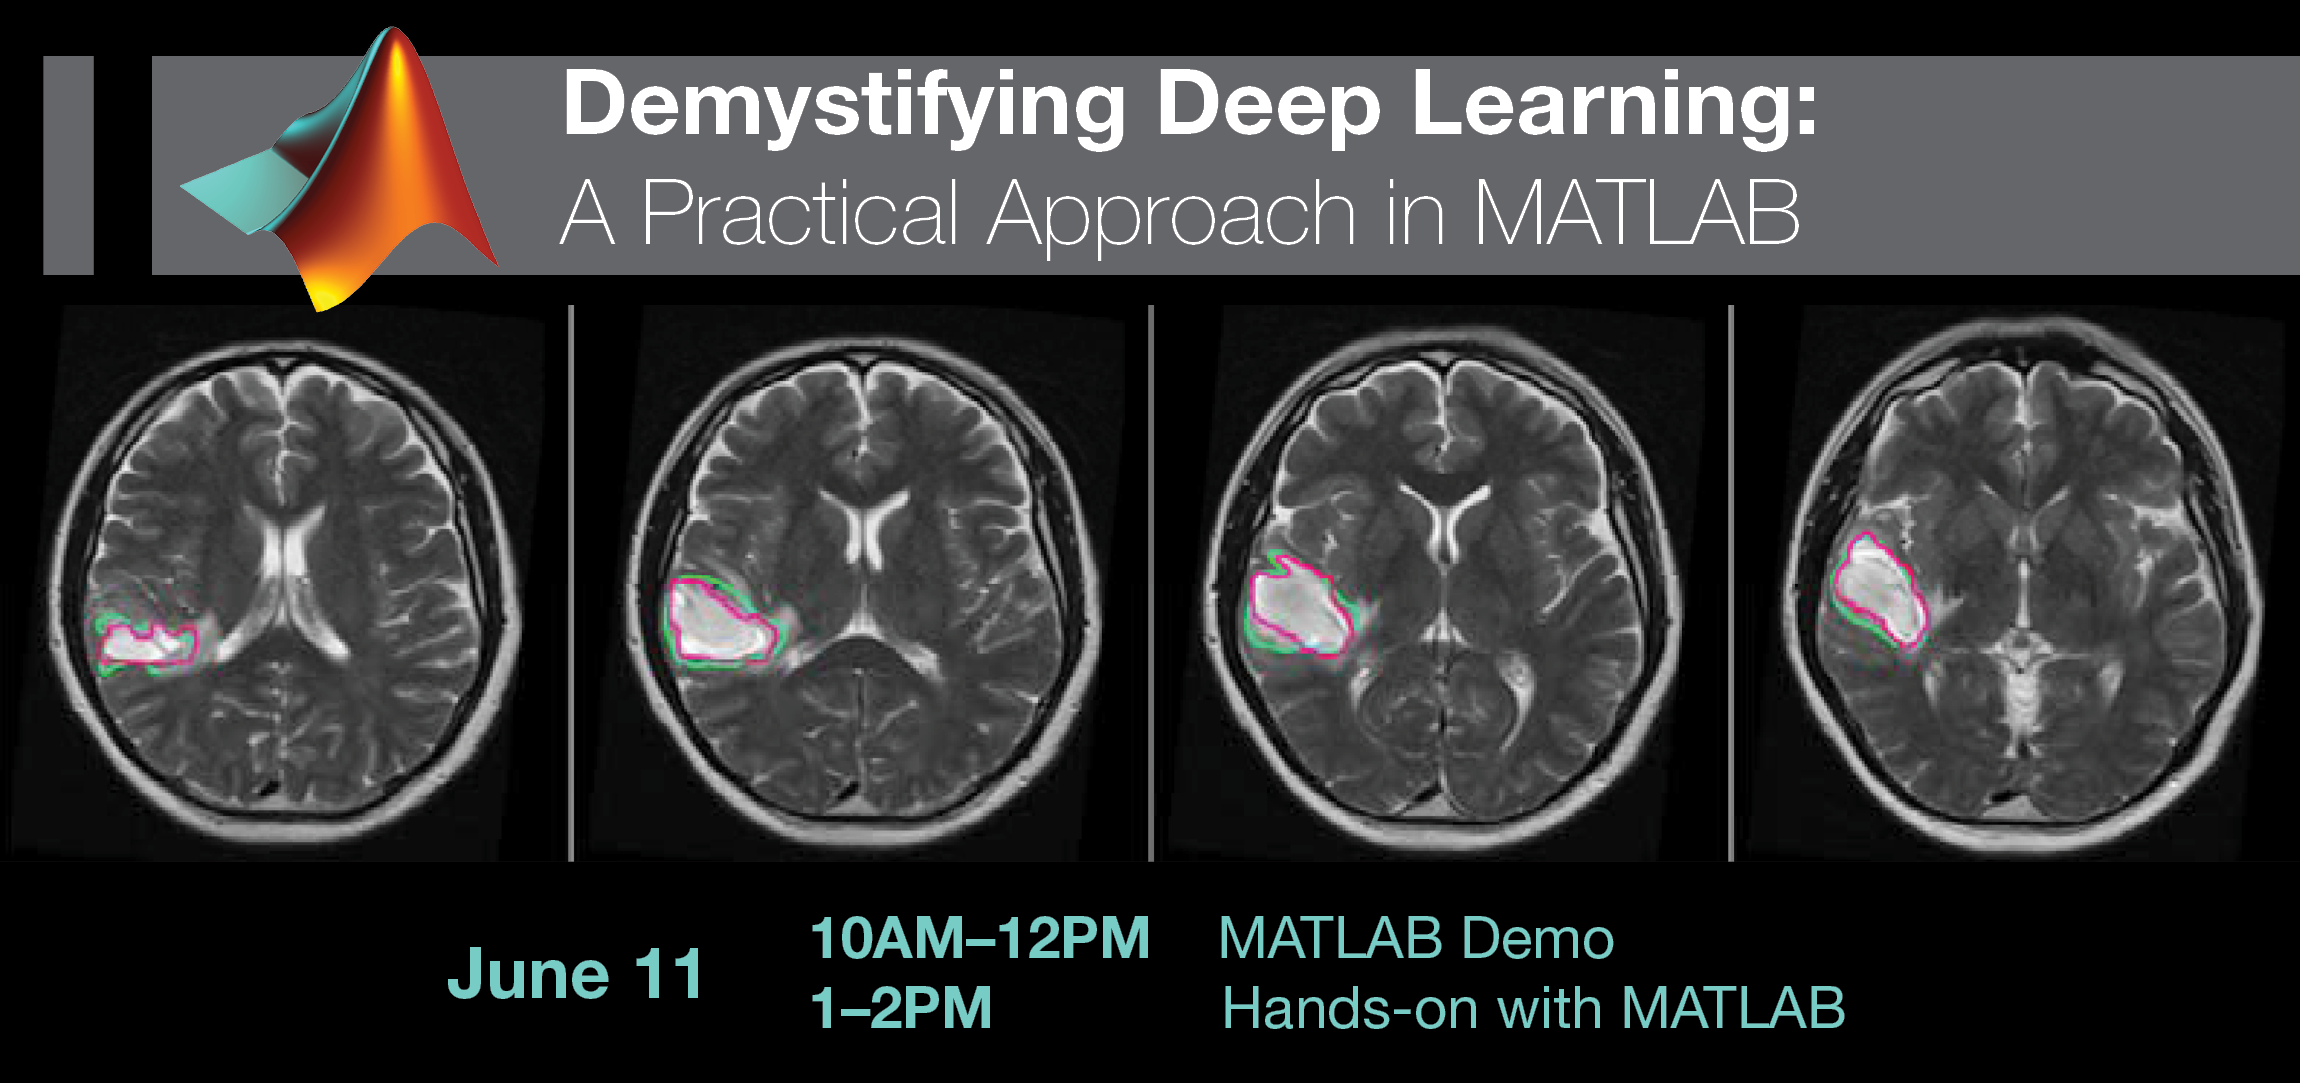 June 11: Demystifying Deep Learning—A Practical Approach in MATLAB